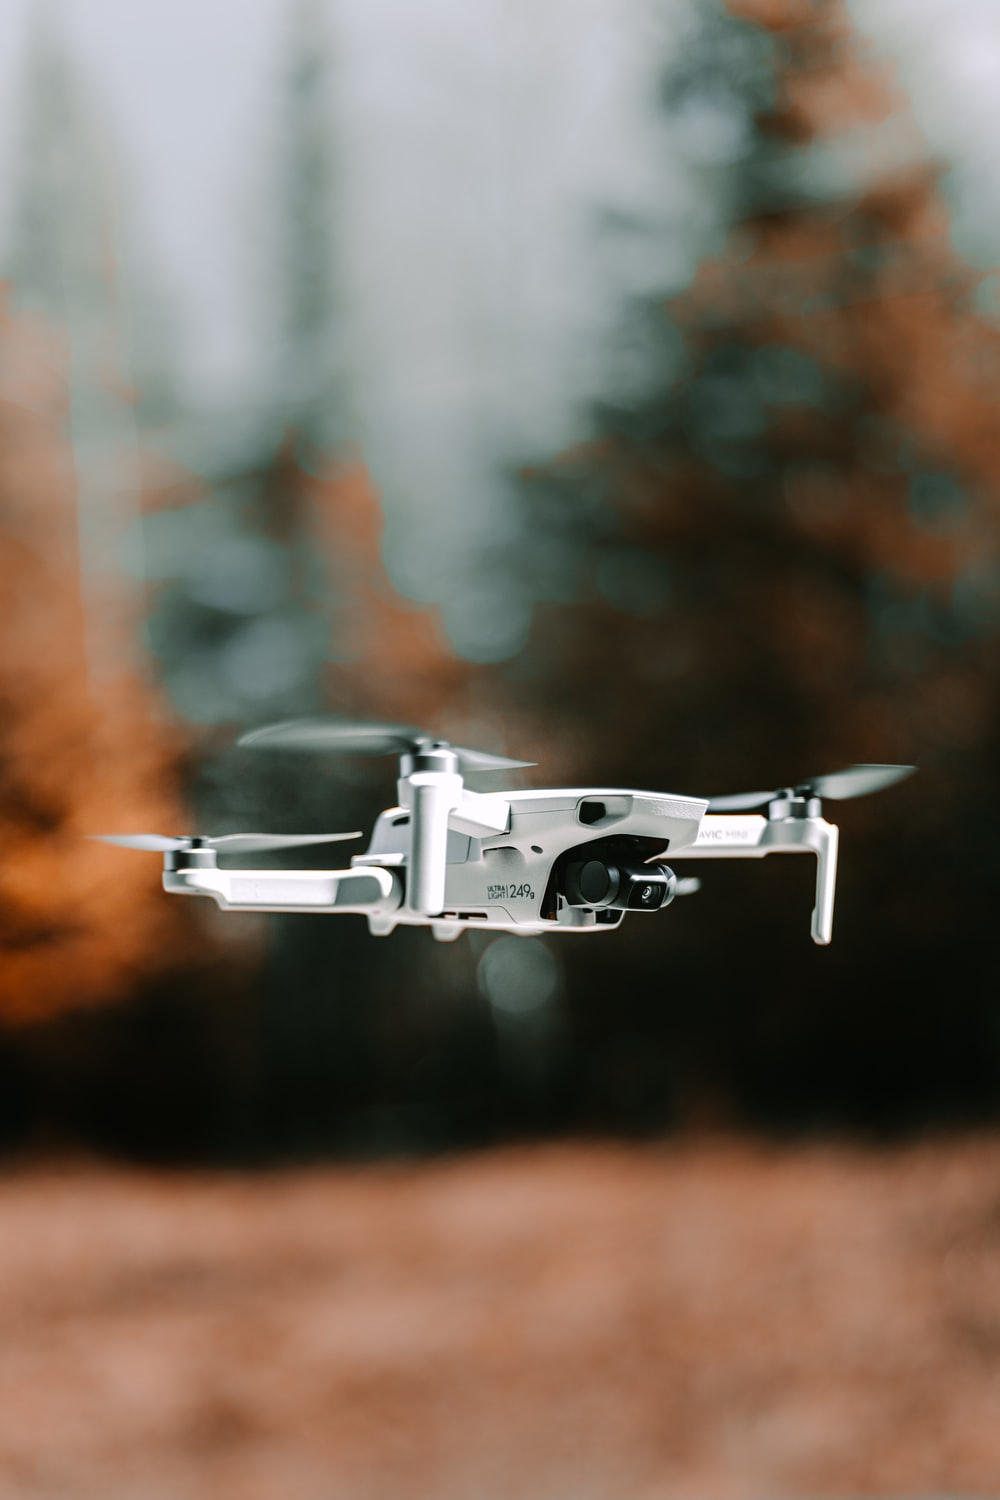 gray drone flying in mid air during daytime